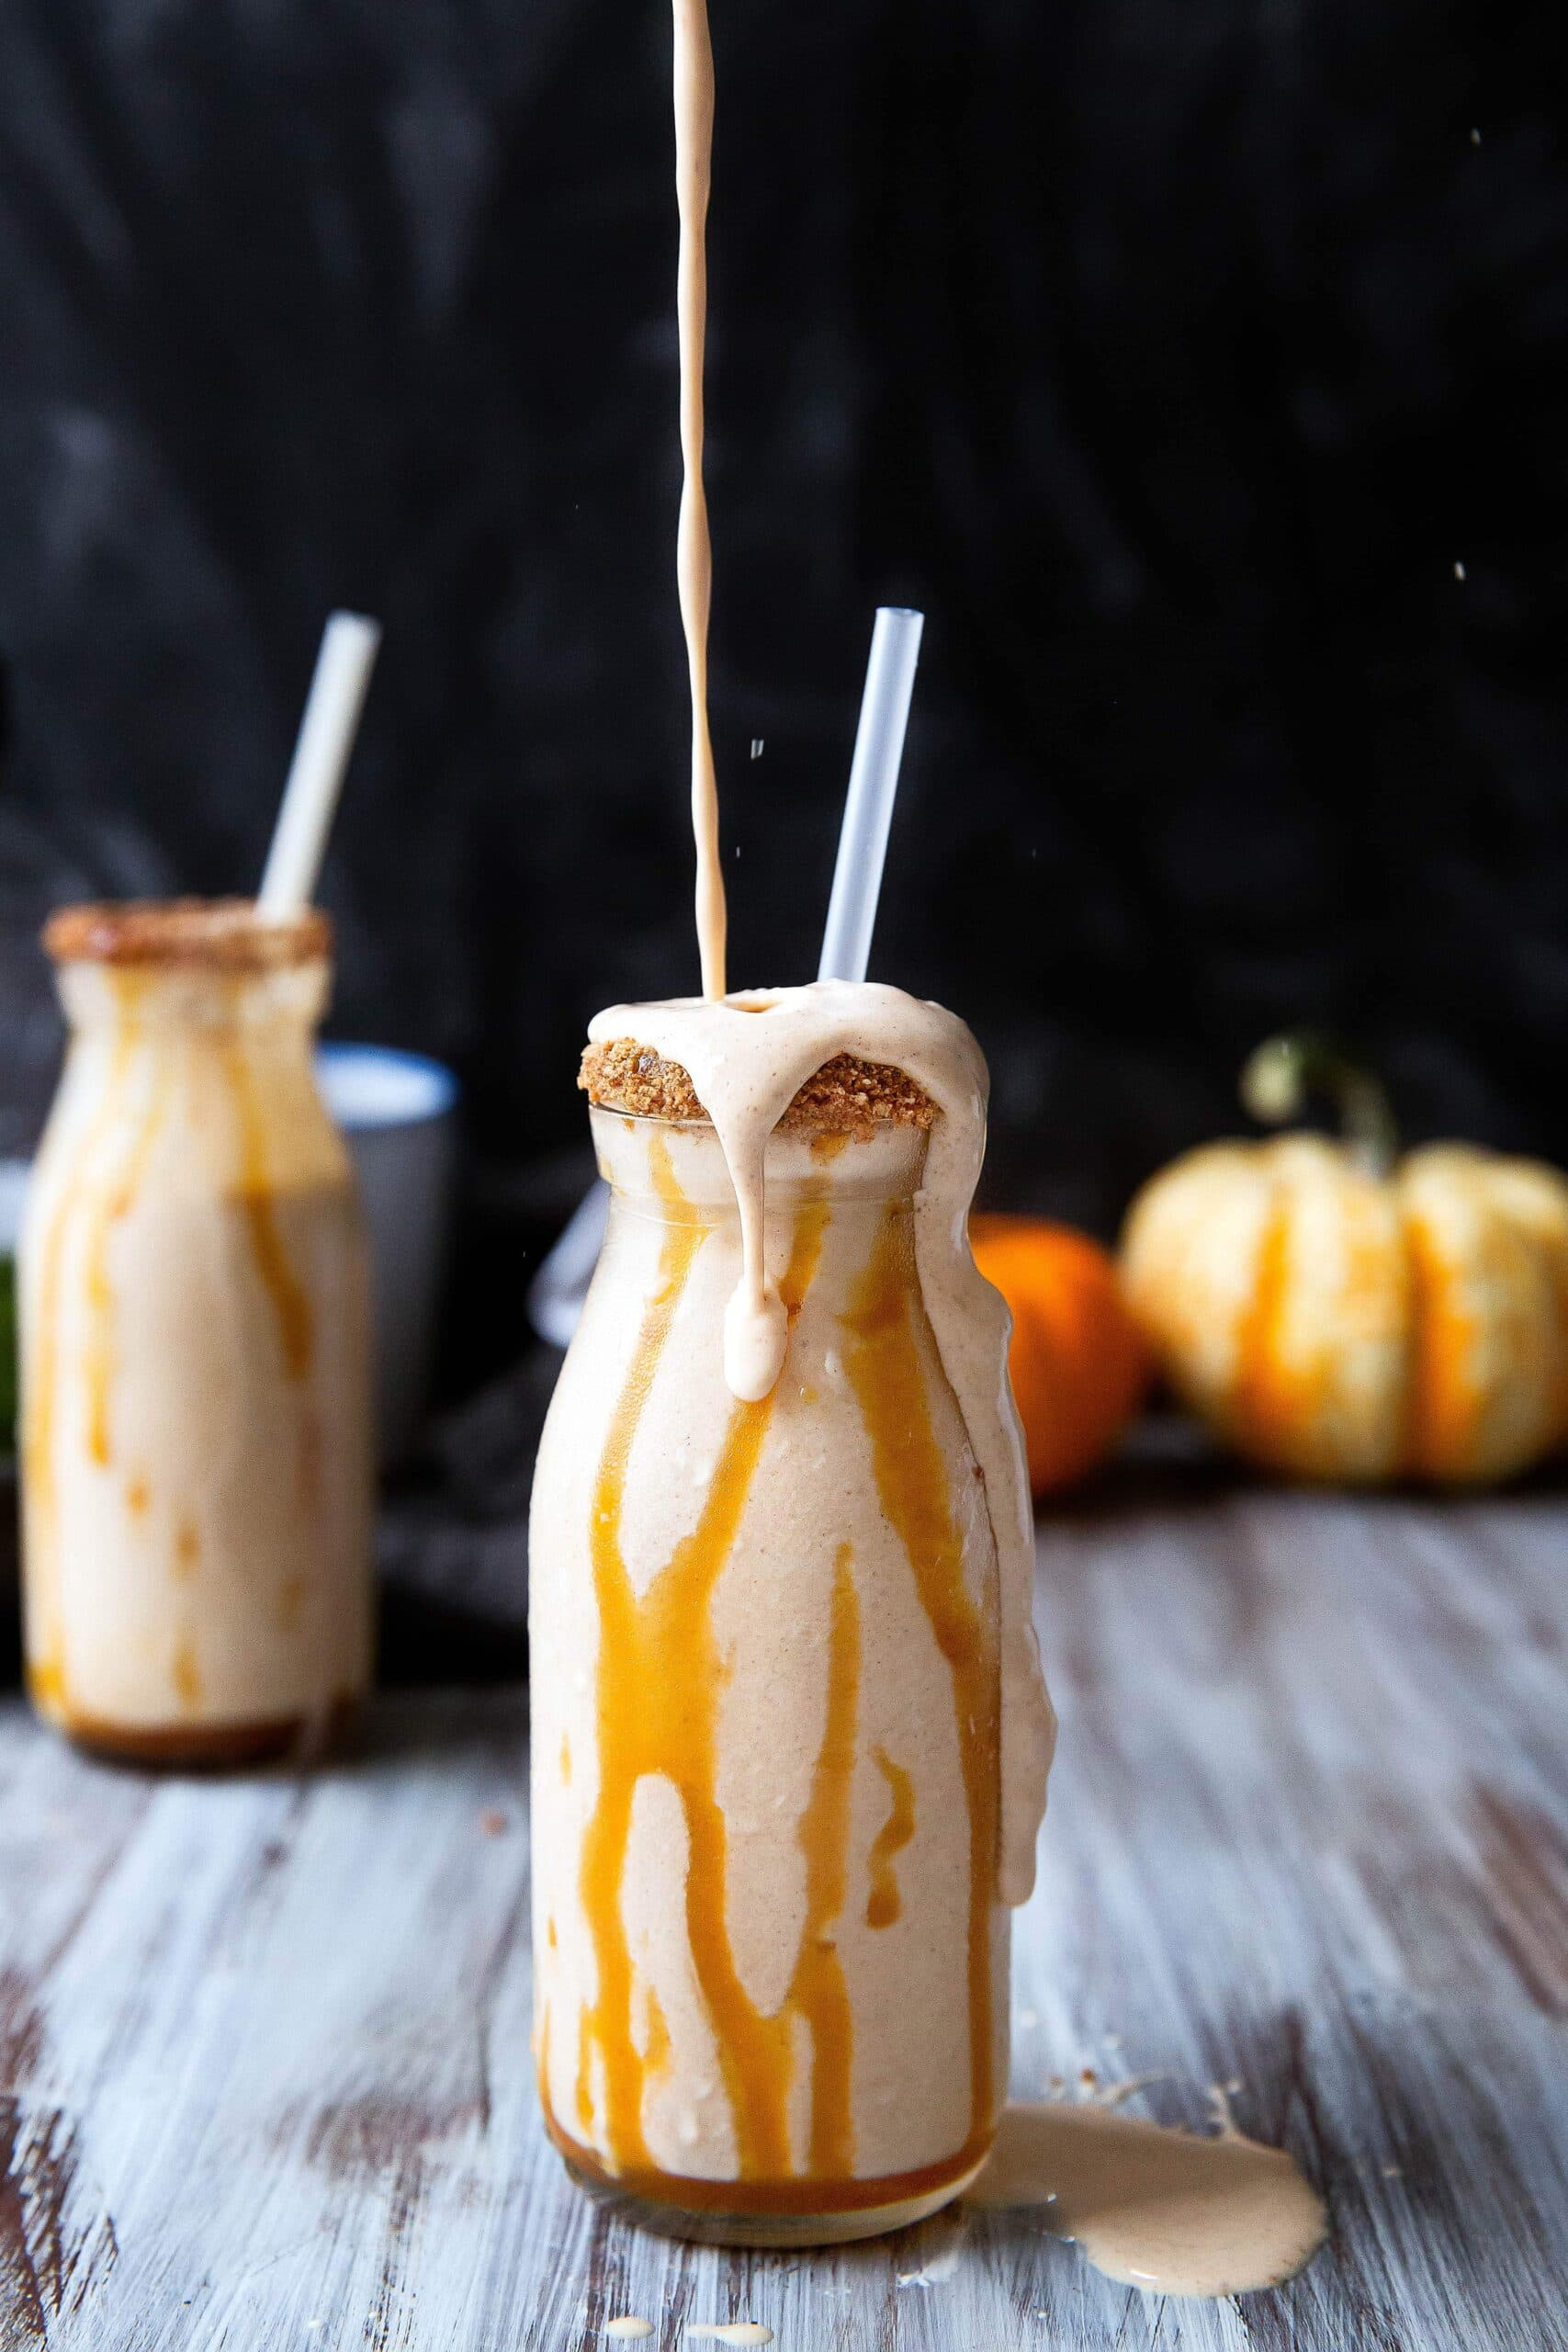 A ridiculously easy boozy pumpkin milkshake with graham, caramel, and bourbon. Hello holiday entertaining!